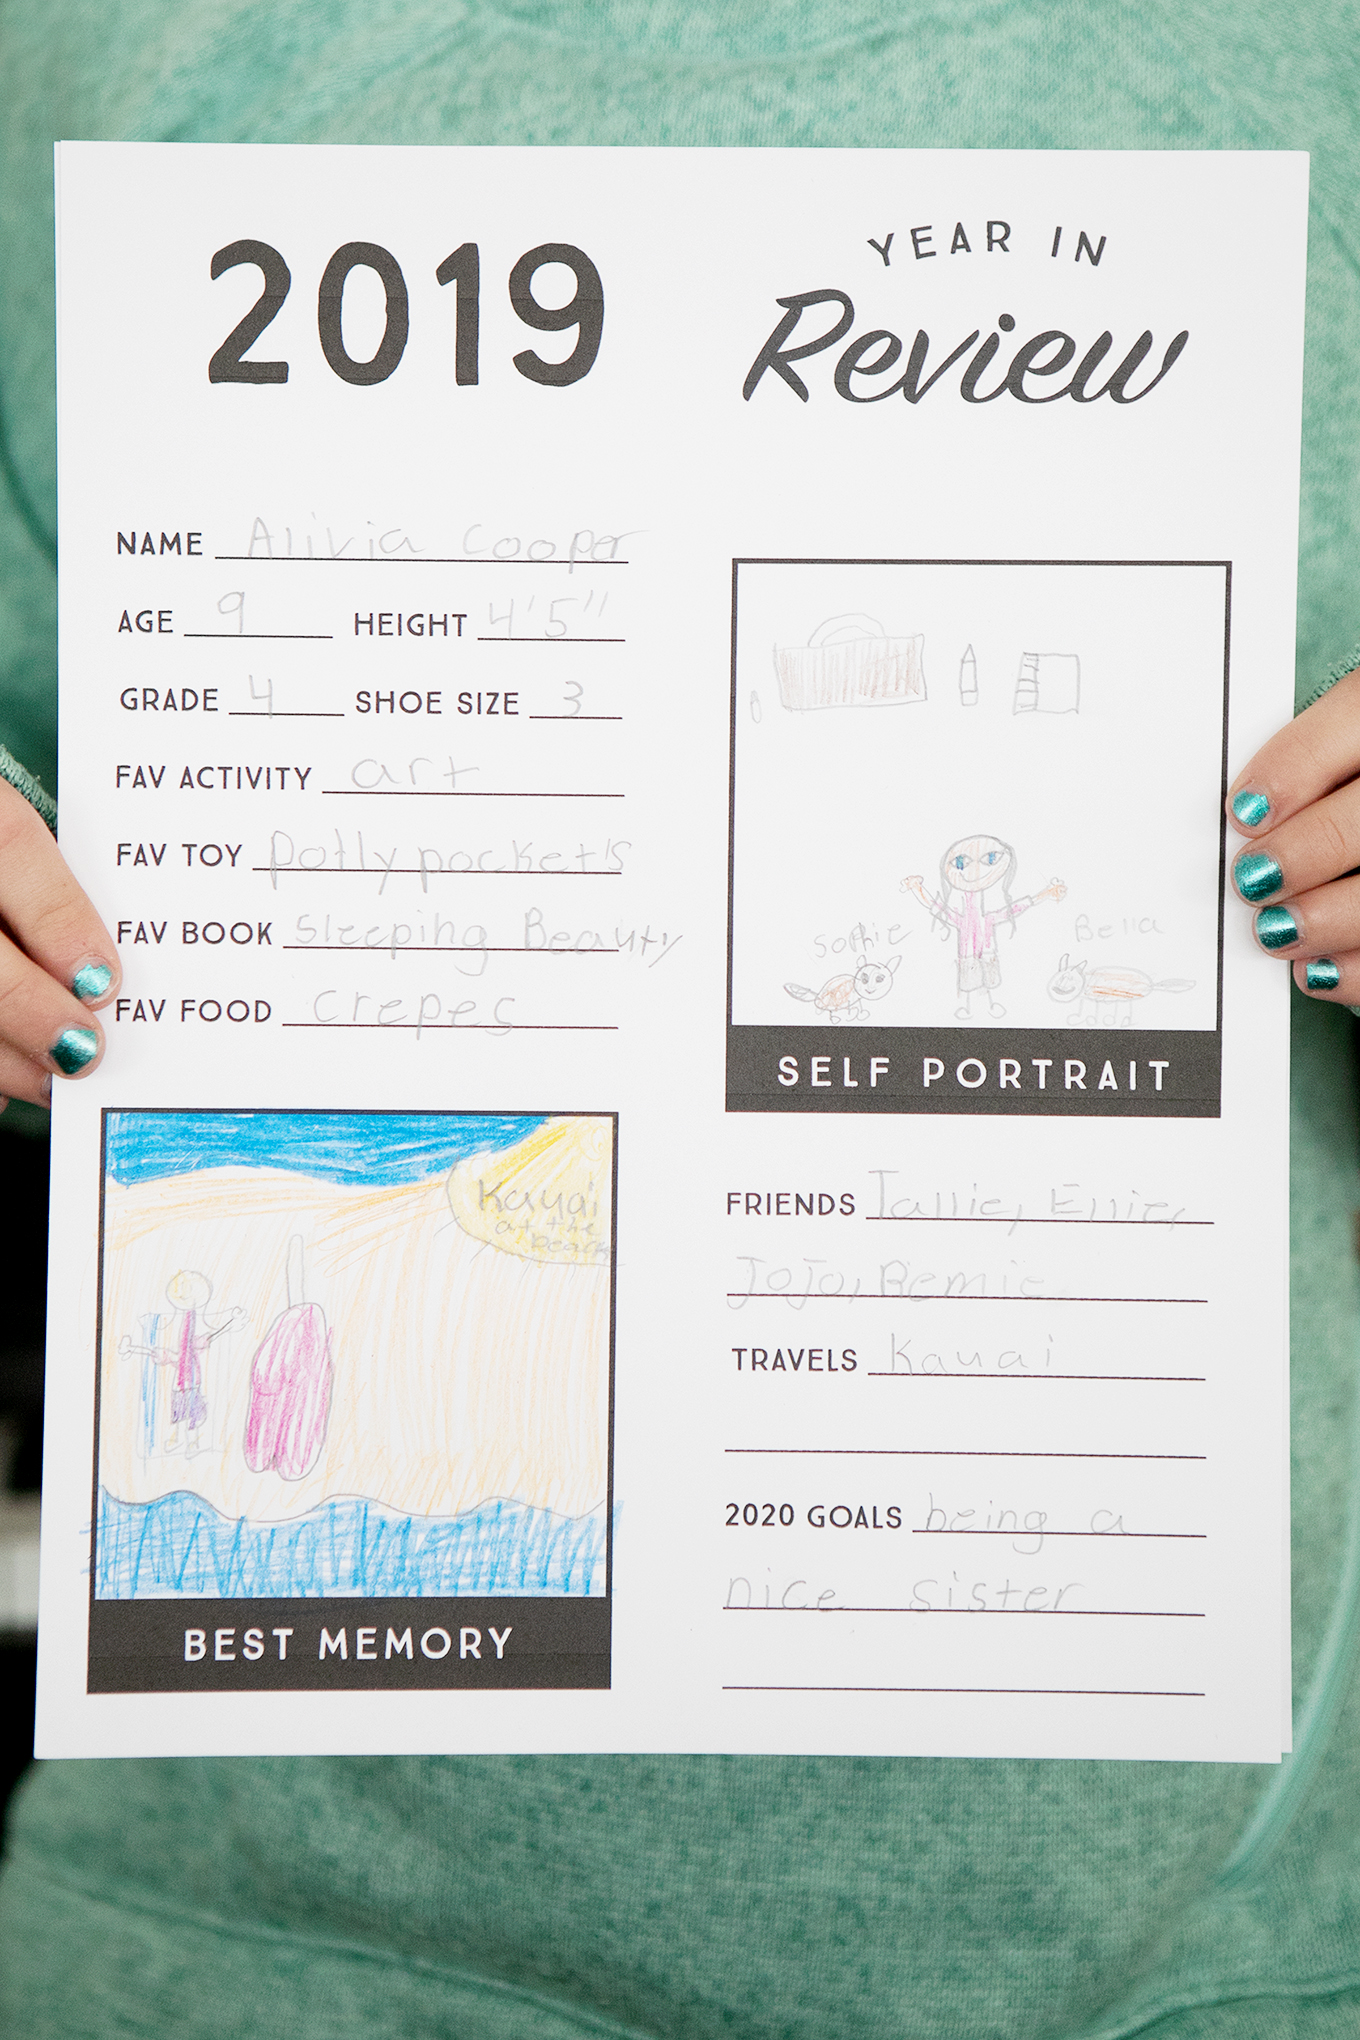 Year in Review Printable for Kids – this free printable year in review sheet gives children a chance to reflect on their favorite memories from the past 12 months and look ahead to new goals and adventures in the coming year!